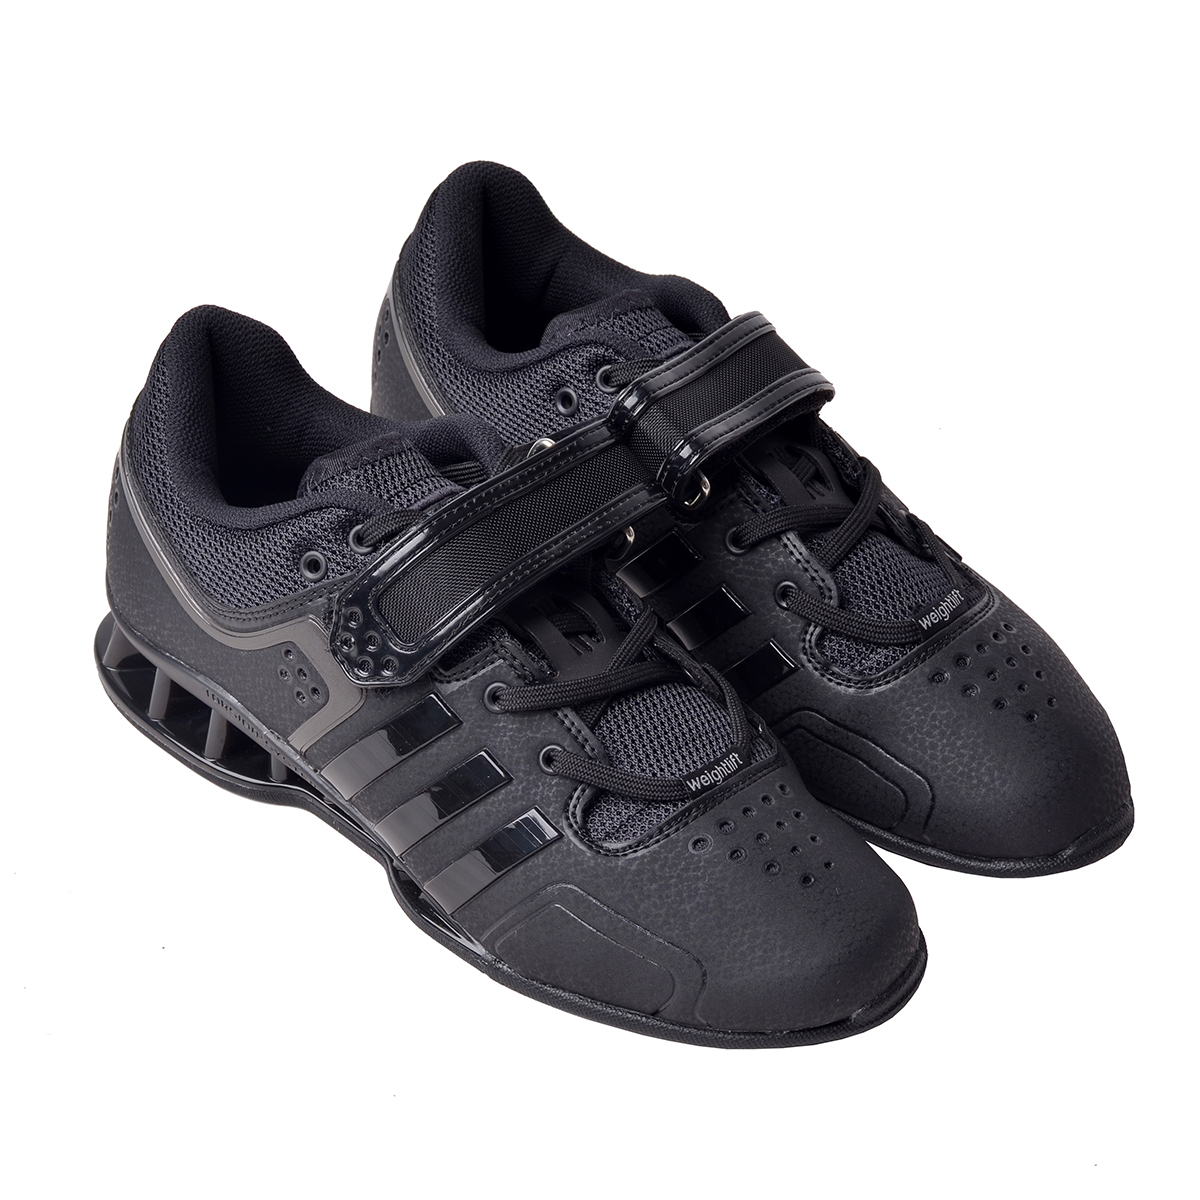 3d7b1d240f24 Adi Power Black Weight Lifting Shoes - D8 Fitness